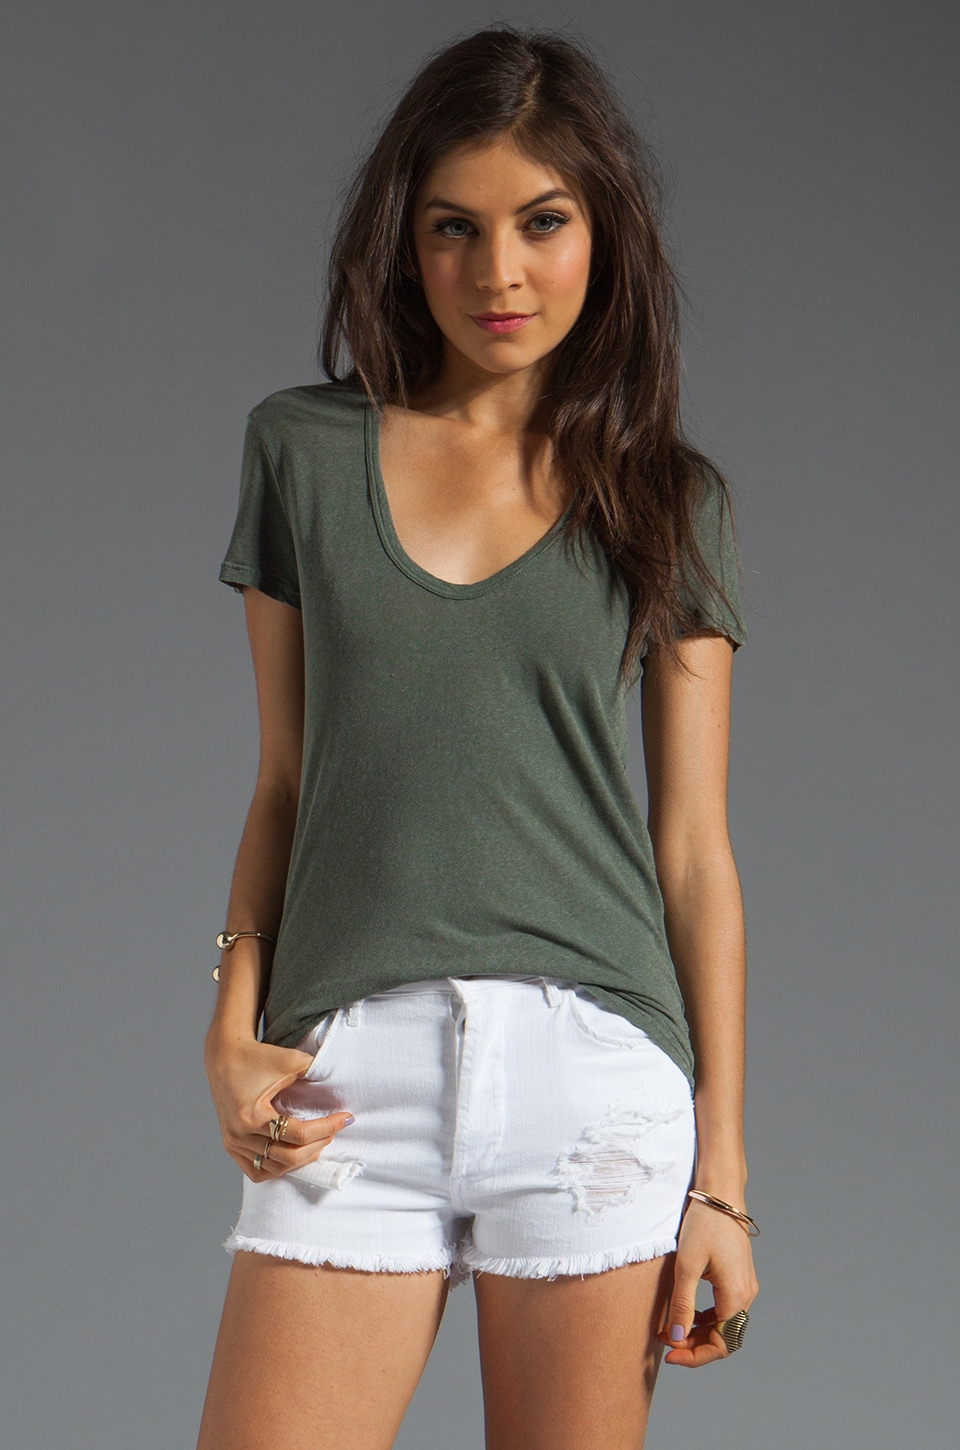 James Perse Deep V Skinny Linen Tee in Alligator